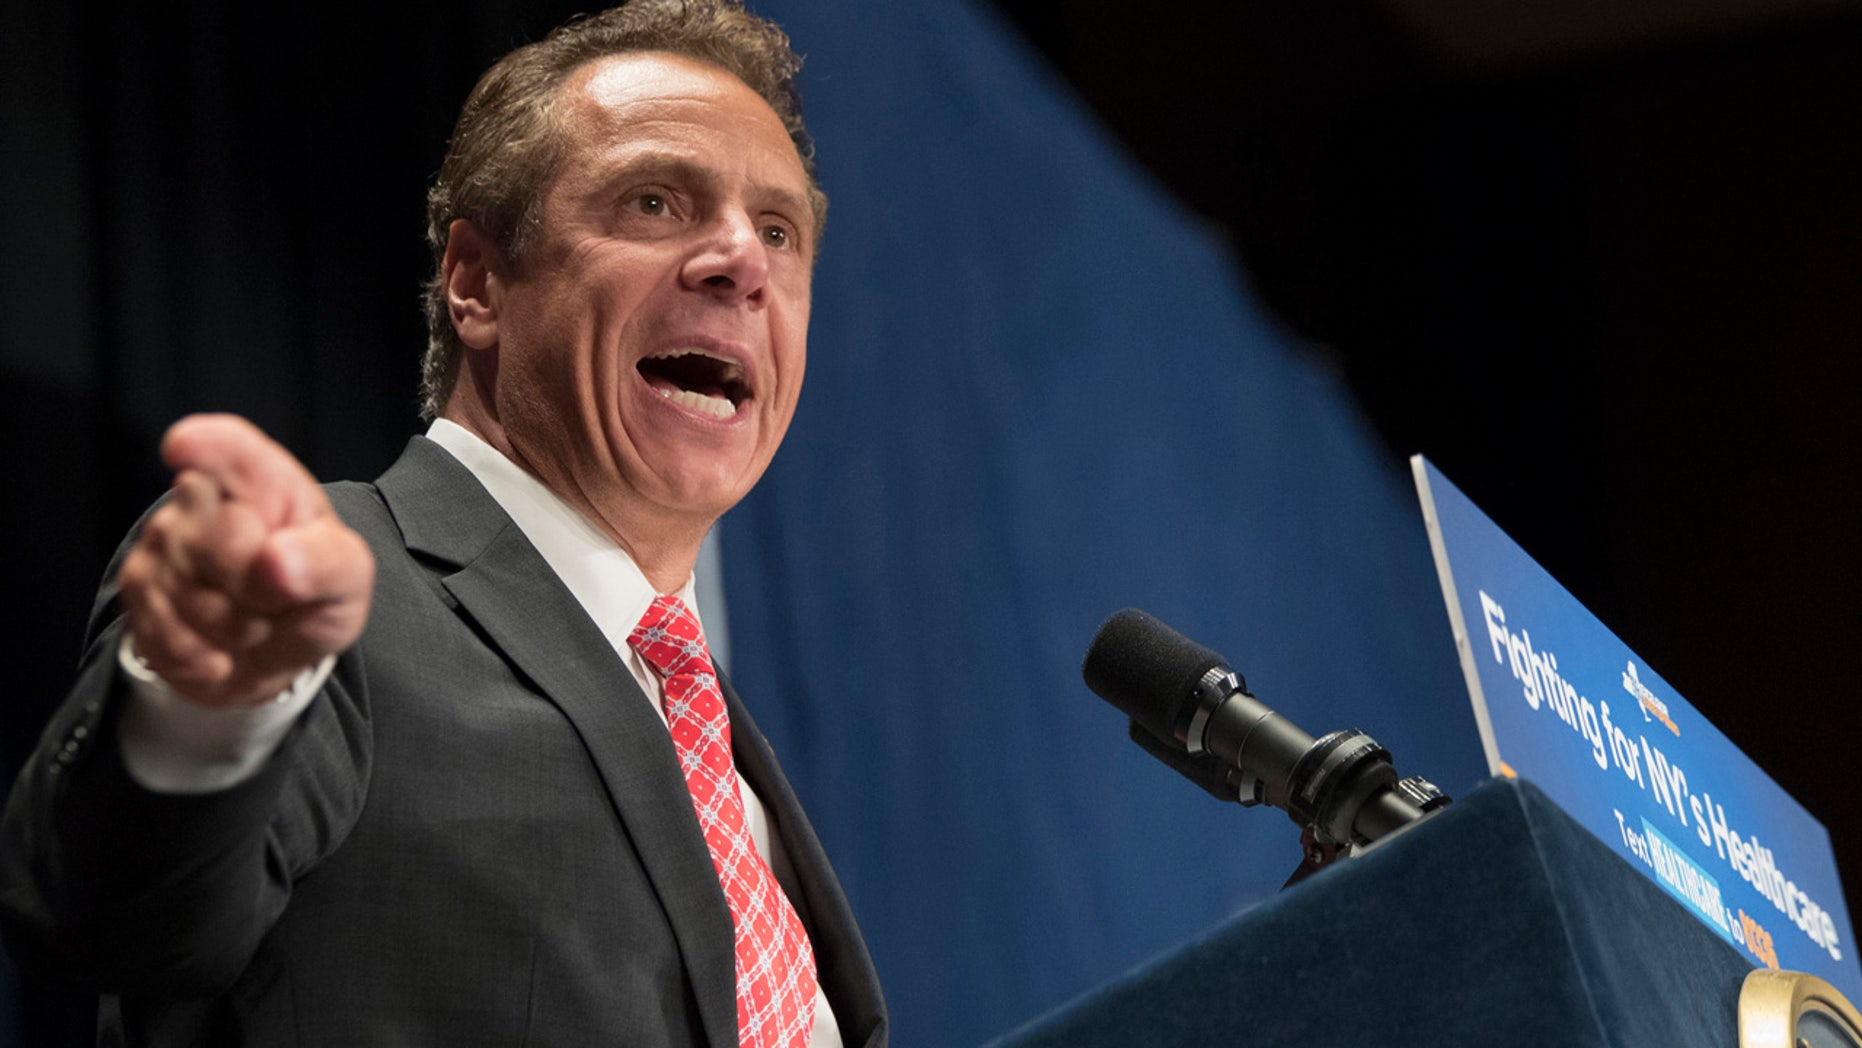 JULY 2017: Gov. Andrew Cuomo speaks during a rally in New York. He faces a tense primary challenge this year against 'Sex and the City'' star Cythia Nixon.